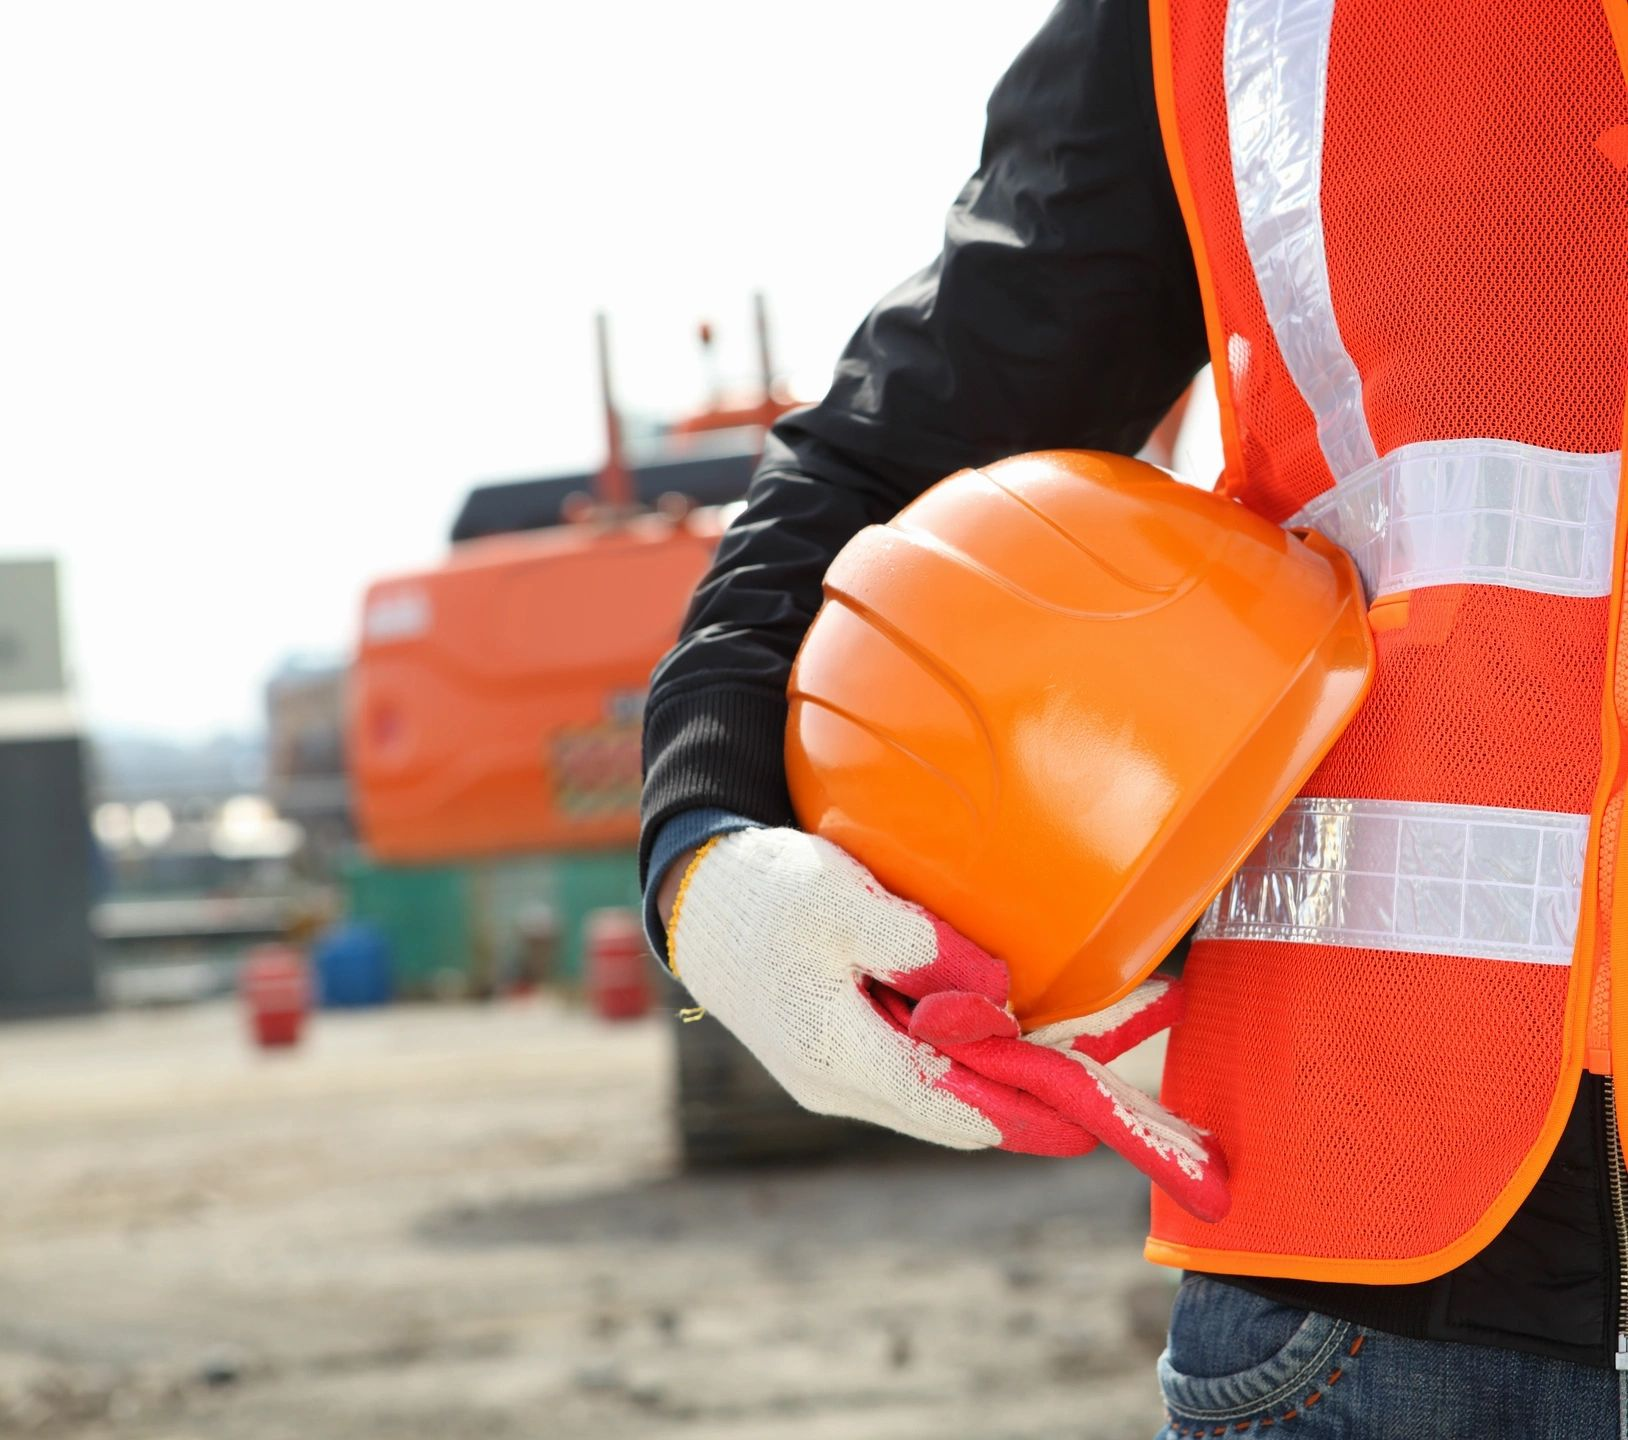 Wearing Personal protection equipment on building site